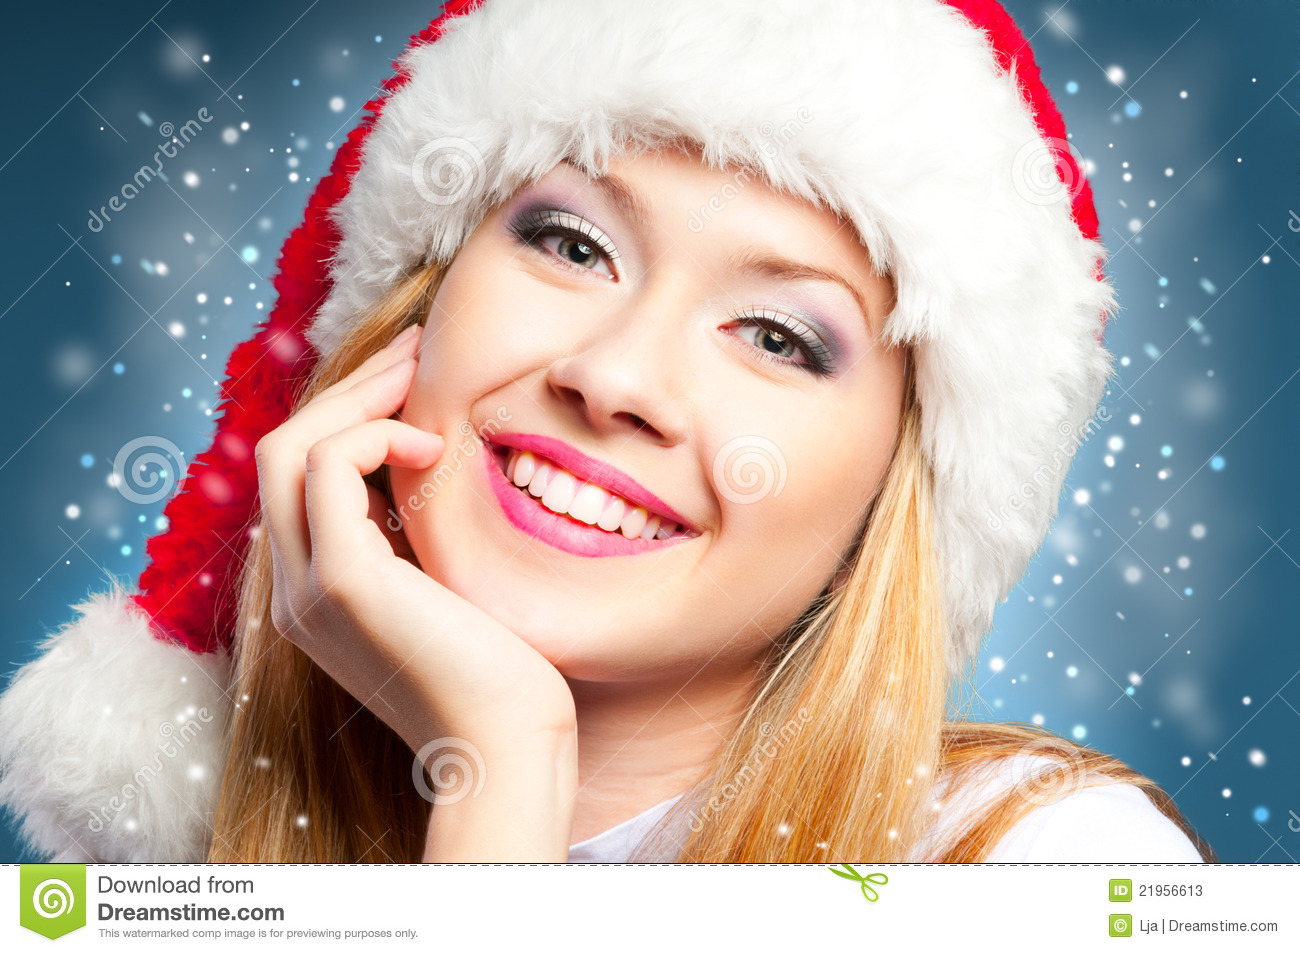 Red background Christmas girl in santa hat. Girl in santa hat portrait, red background Christmas girl in santa hat. Red background Christmas girl in santa hat. Red background Happy smiling girl with Santa hat with a phone. On a light background. Studio photography Girl with santa hat and shiny disco ball.